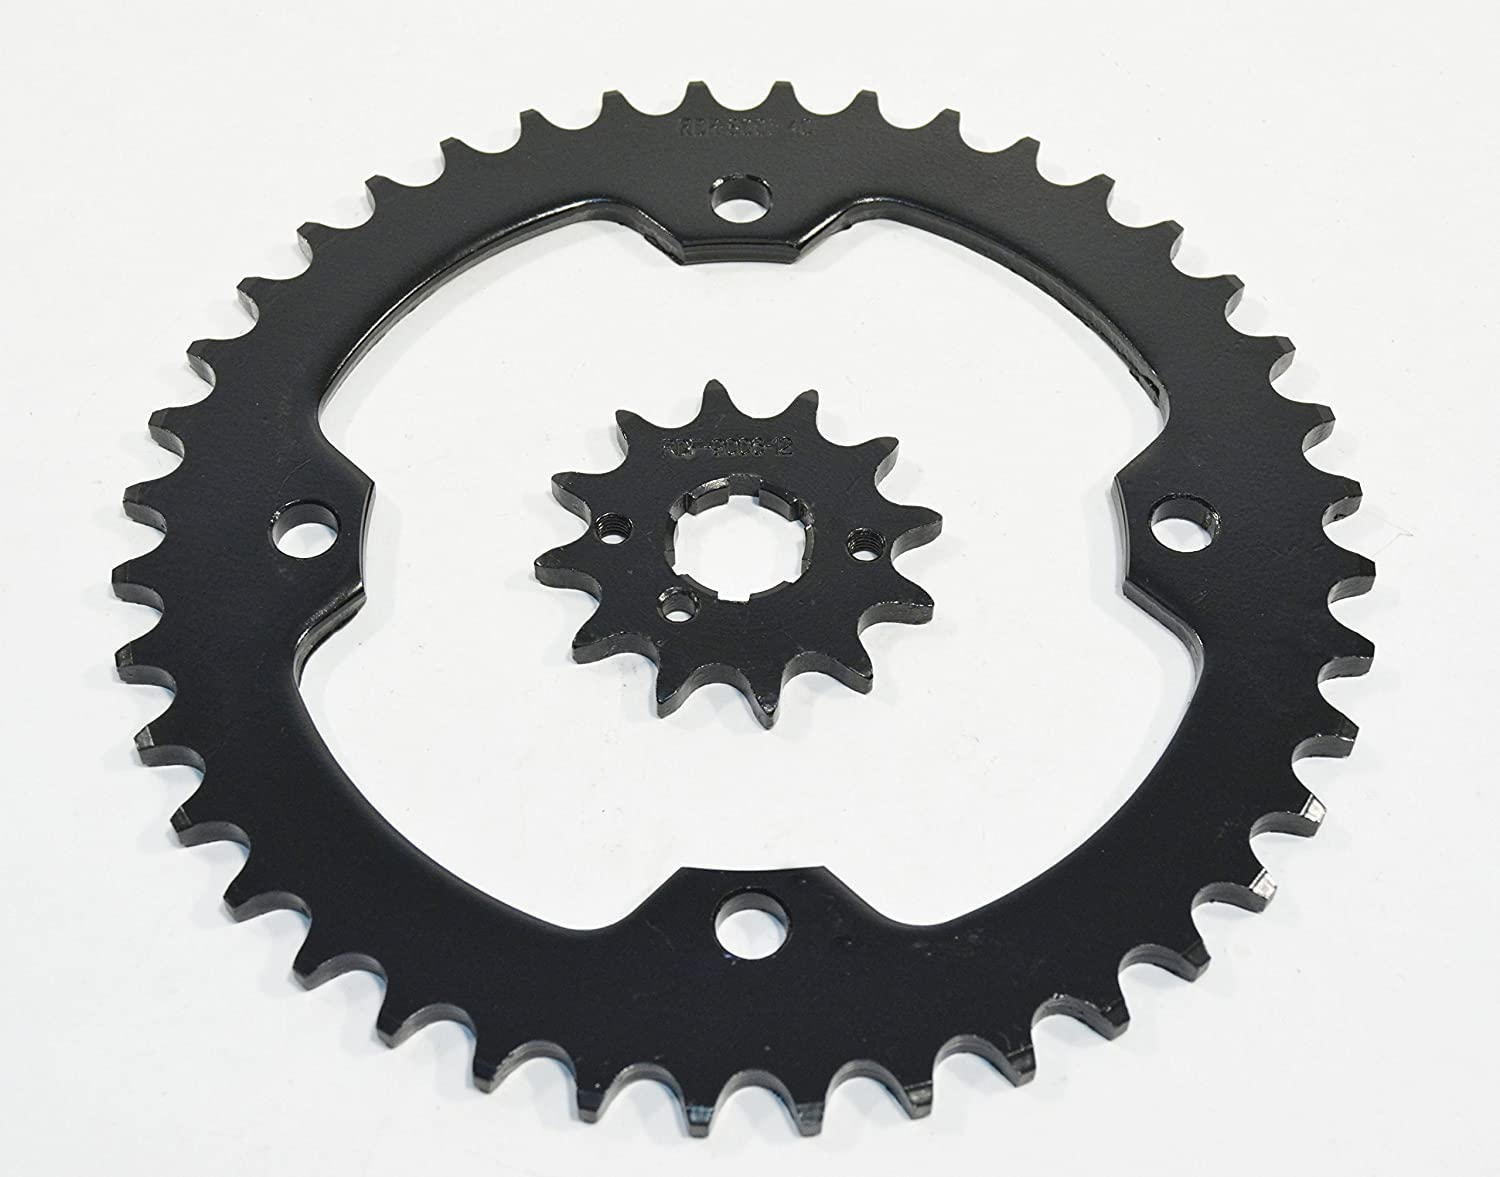 87-1988 Yamaha YFM350 350 Warrior 12 Tooth Front & 40 Tooth Rear Black Sprocket Race-Driven